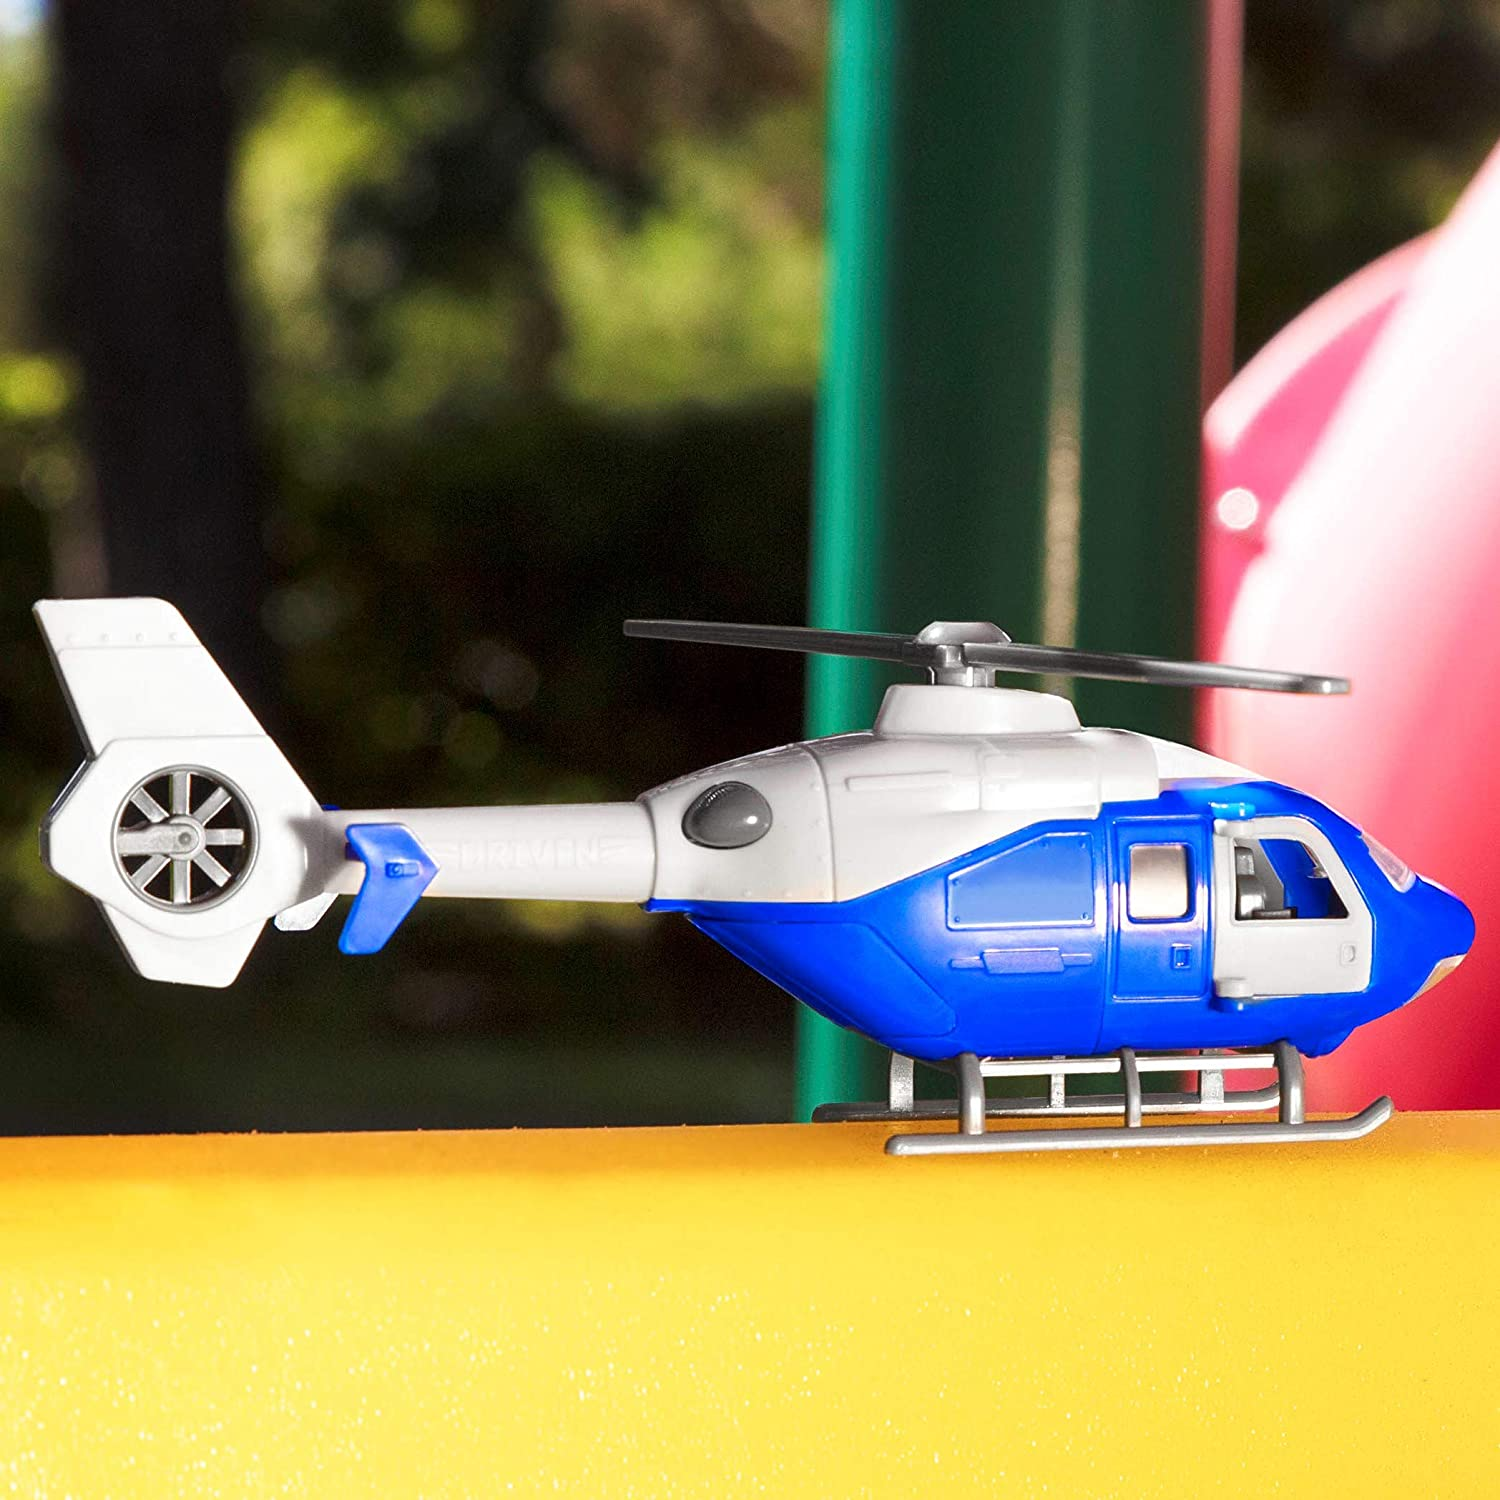 Helicopter DRIVEN by Battat Toy Helicopter with Lights and Sound ...